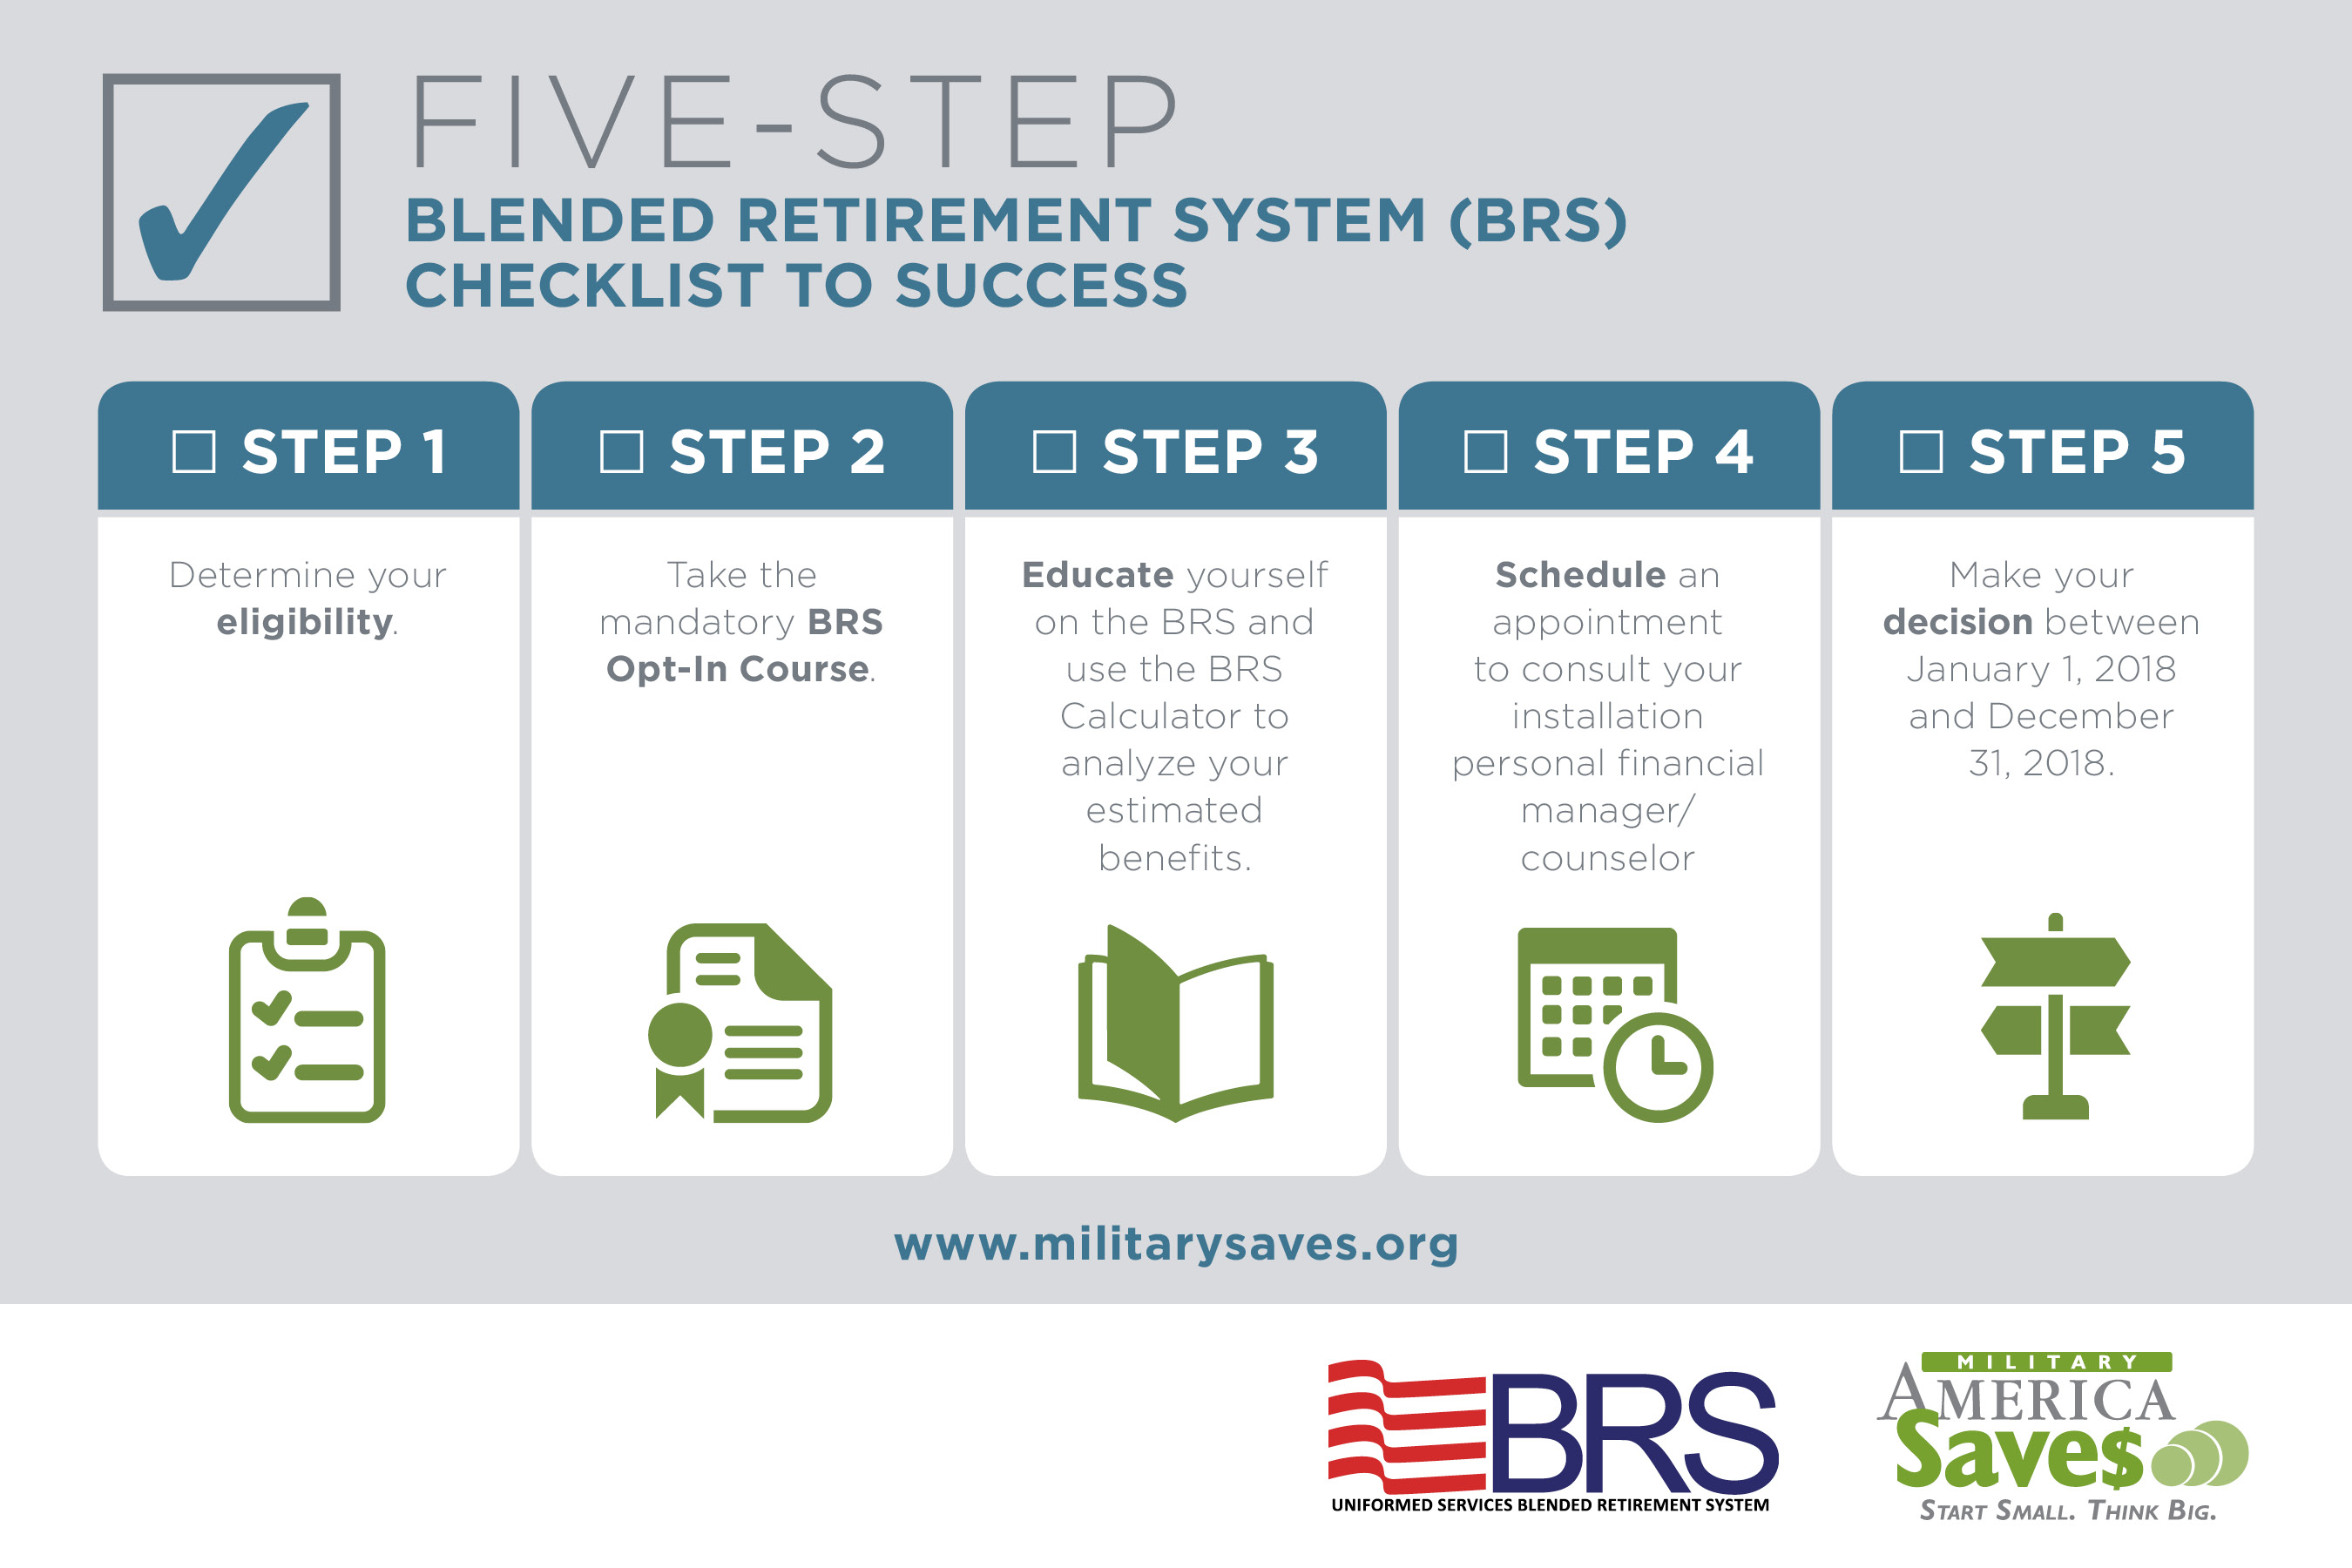 Your Five Step Blended Retirement System Checklist To Success